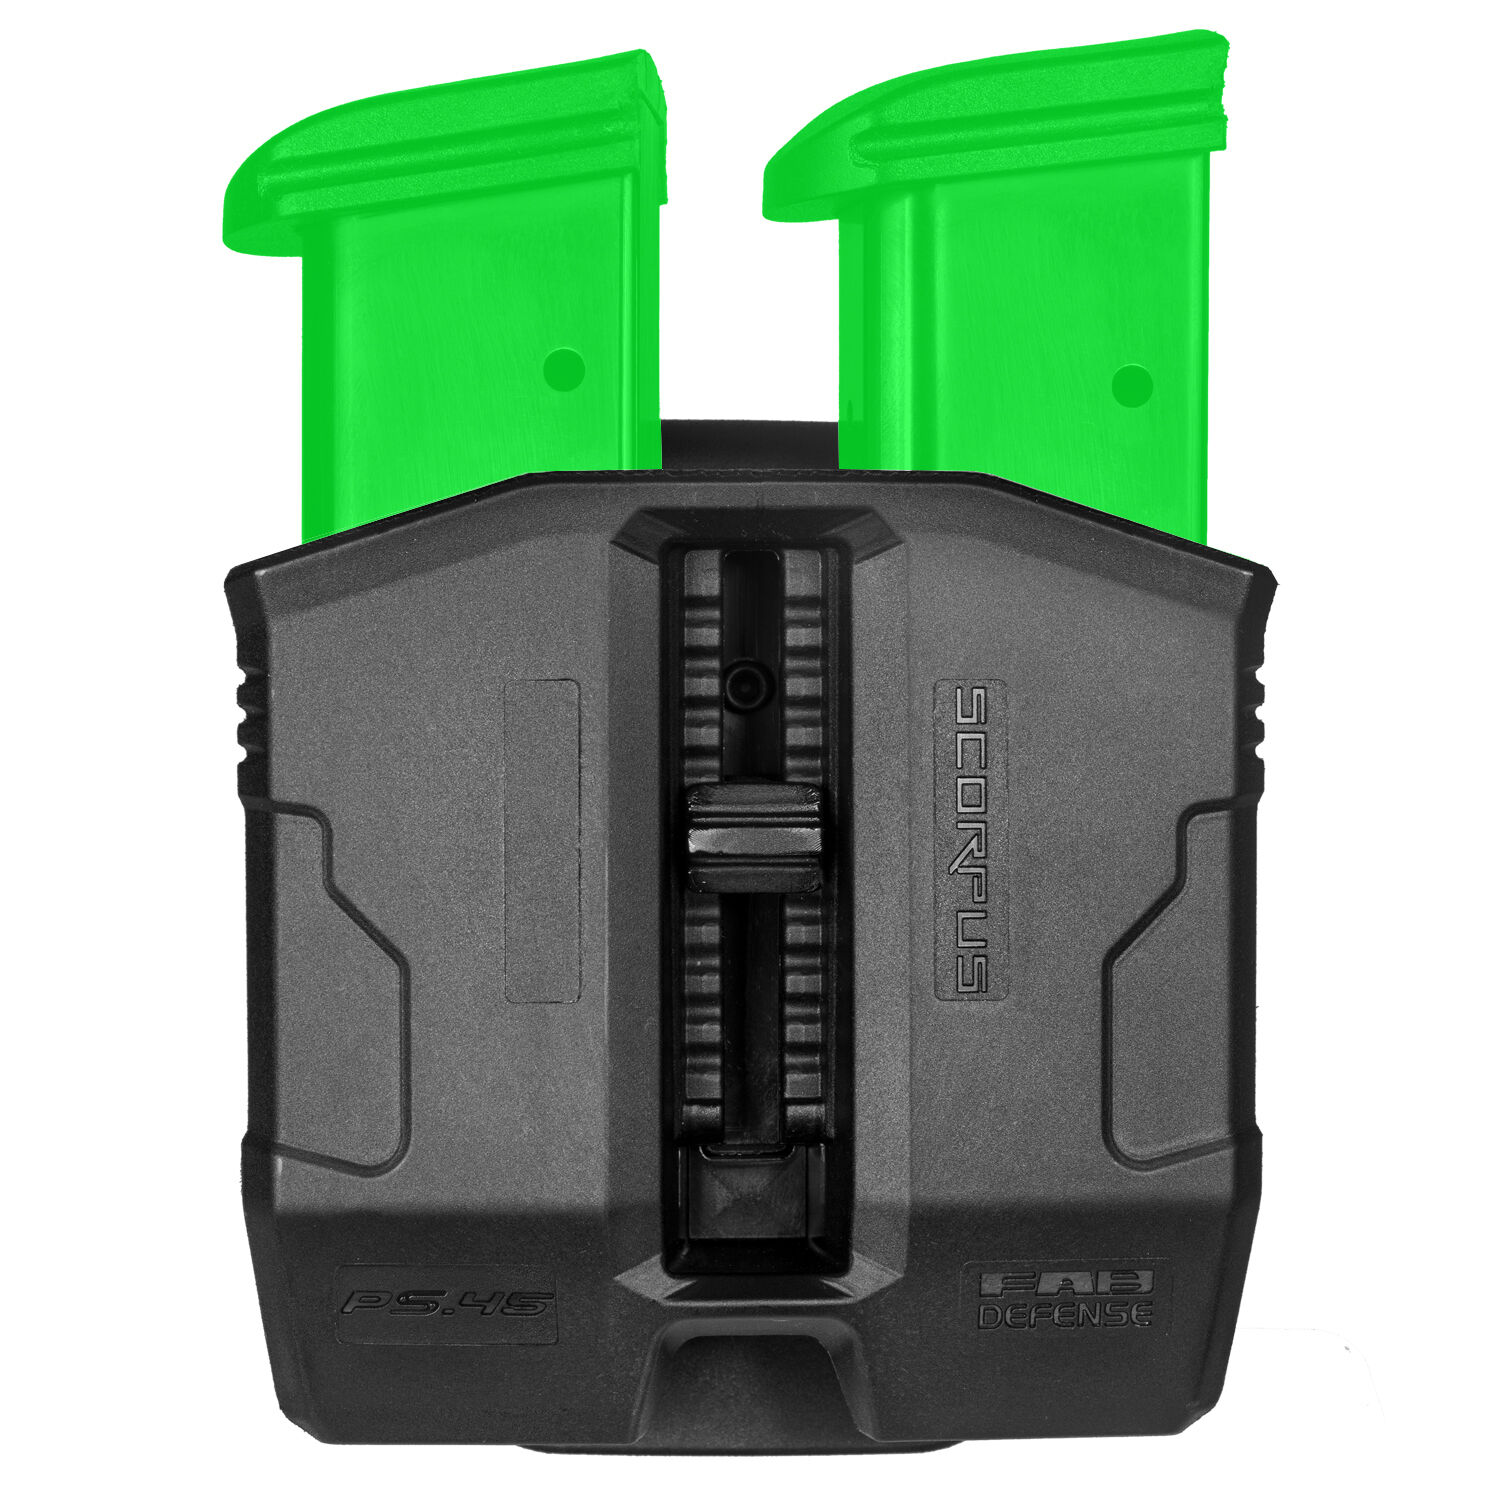 Double Magazine Pouch w  Swivel for Sig Sauer P250 .45 ACP, P227 - PS-45S